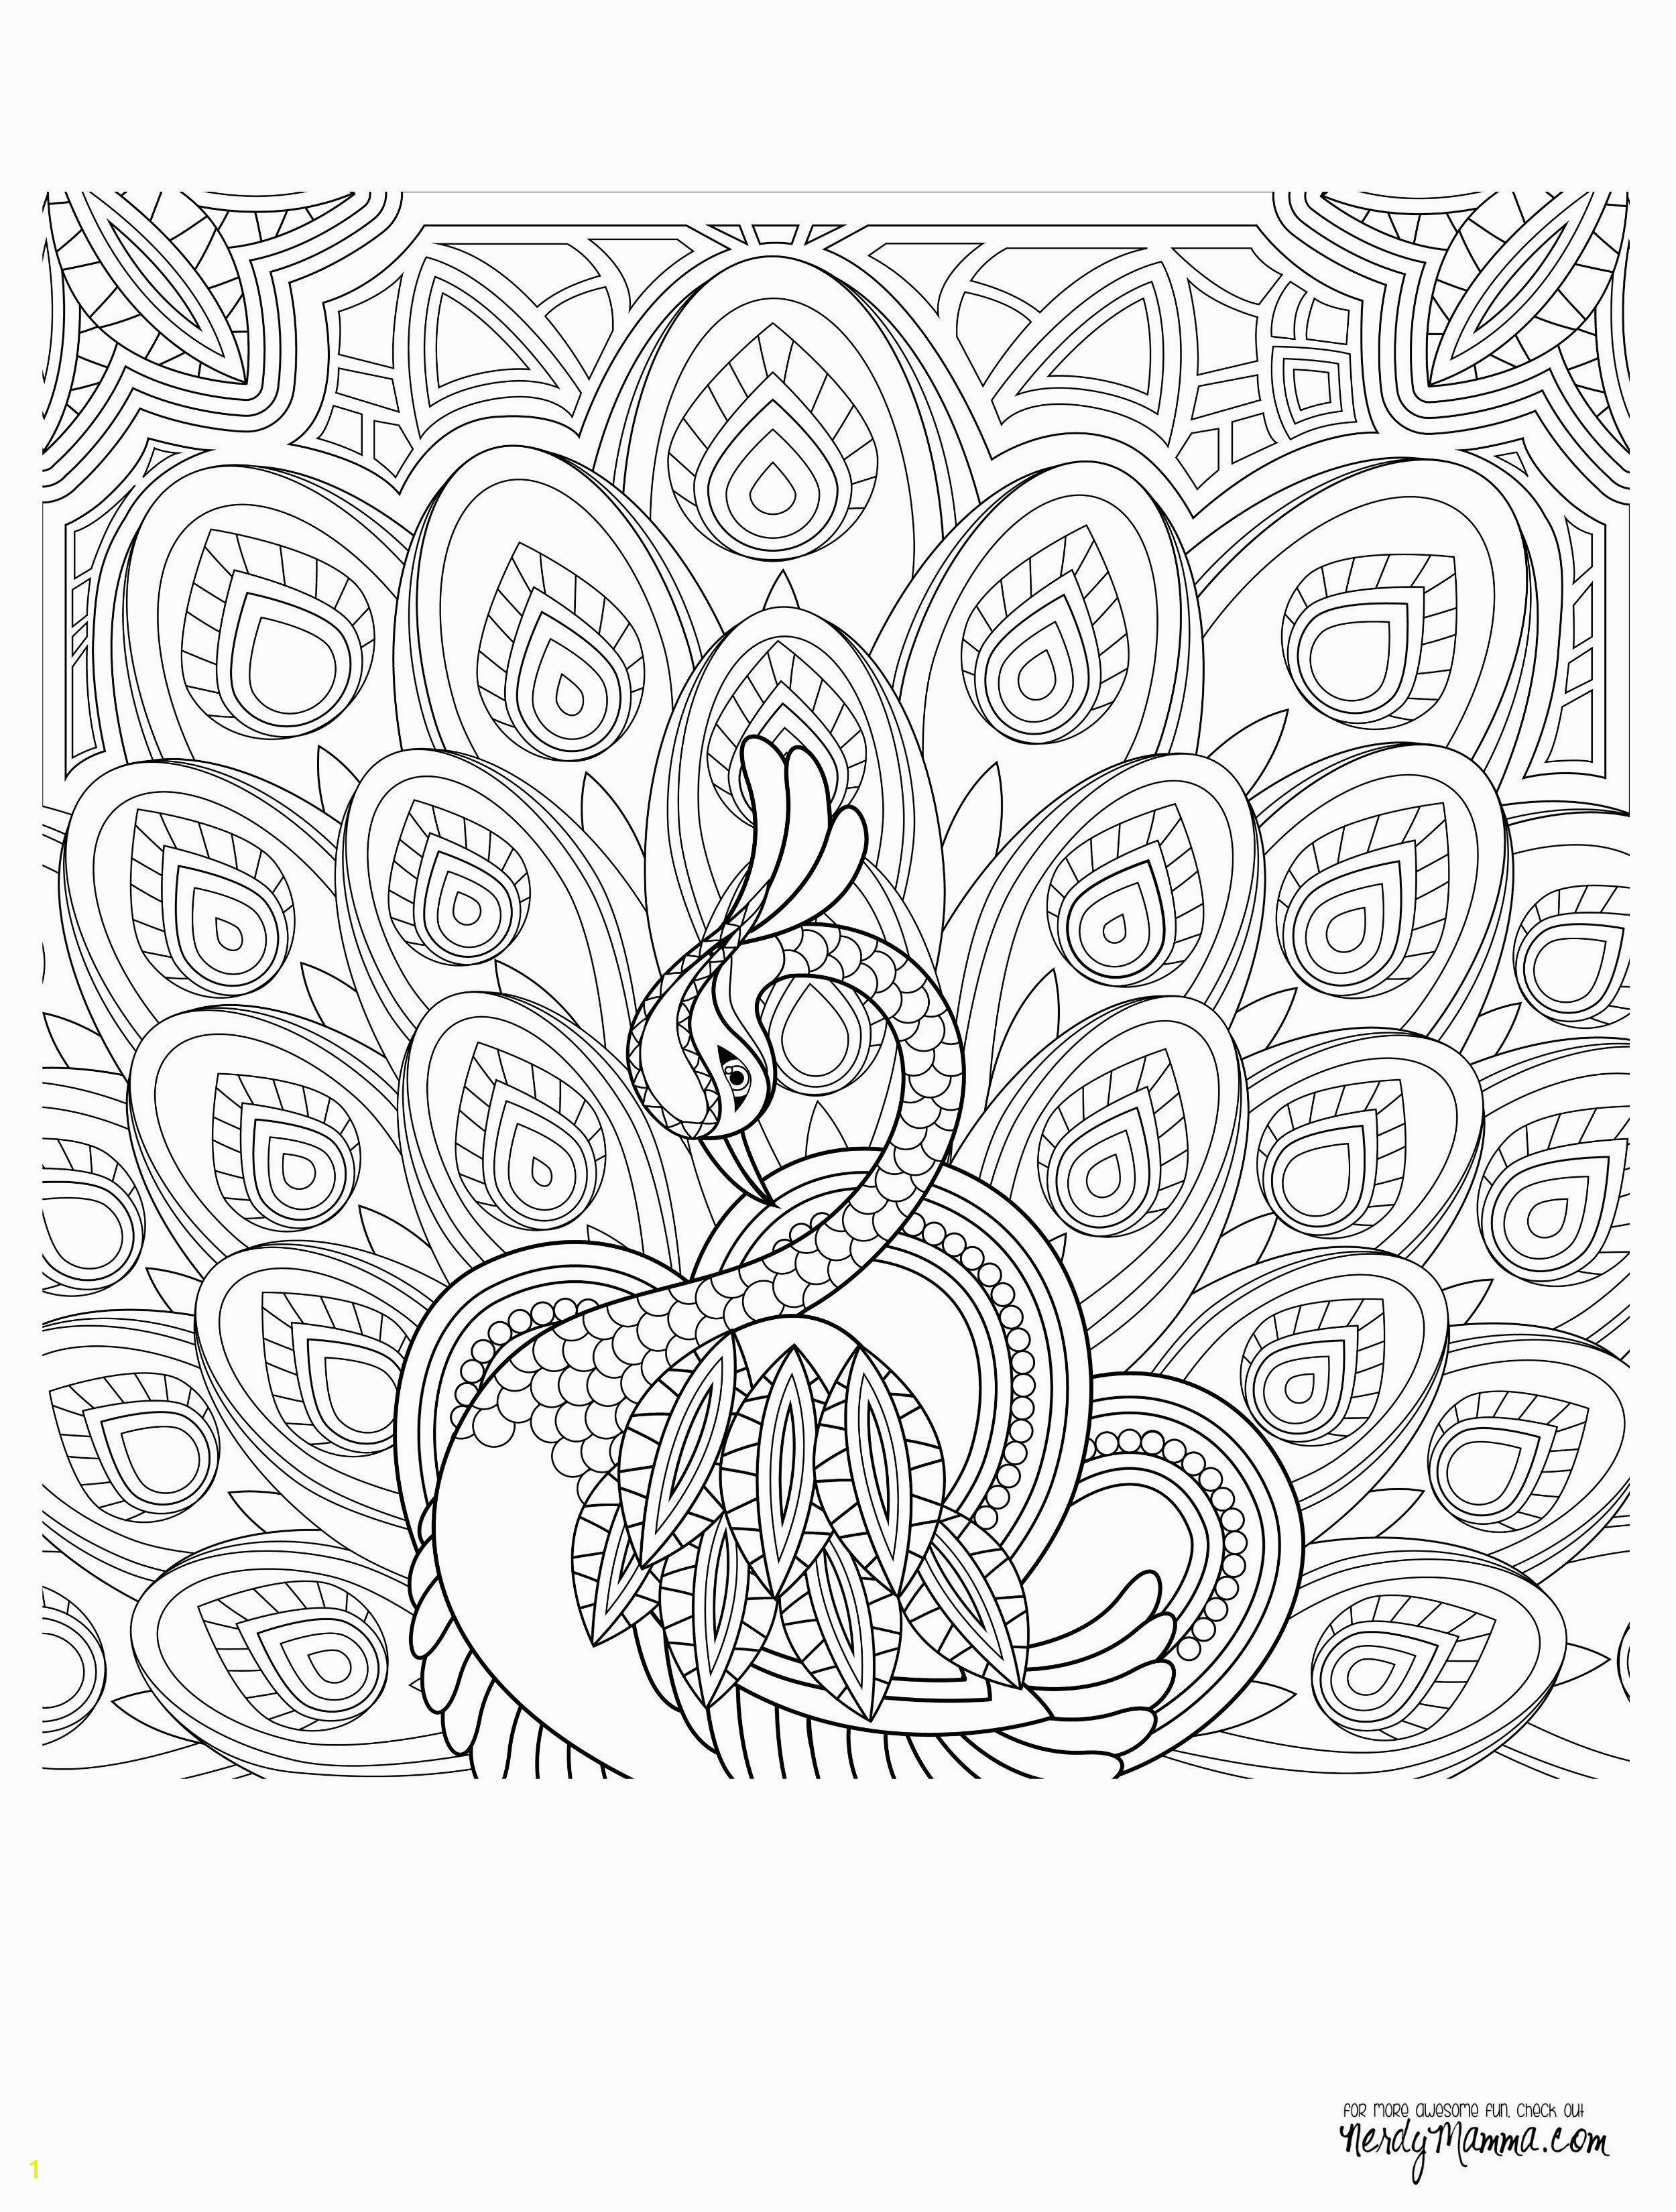 Coloring Pages for Christmas Time 2018 Colouring In New New Colouring Family C3 82 C2 A0 0d Free Coloring